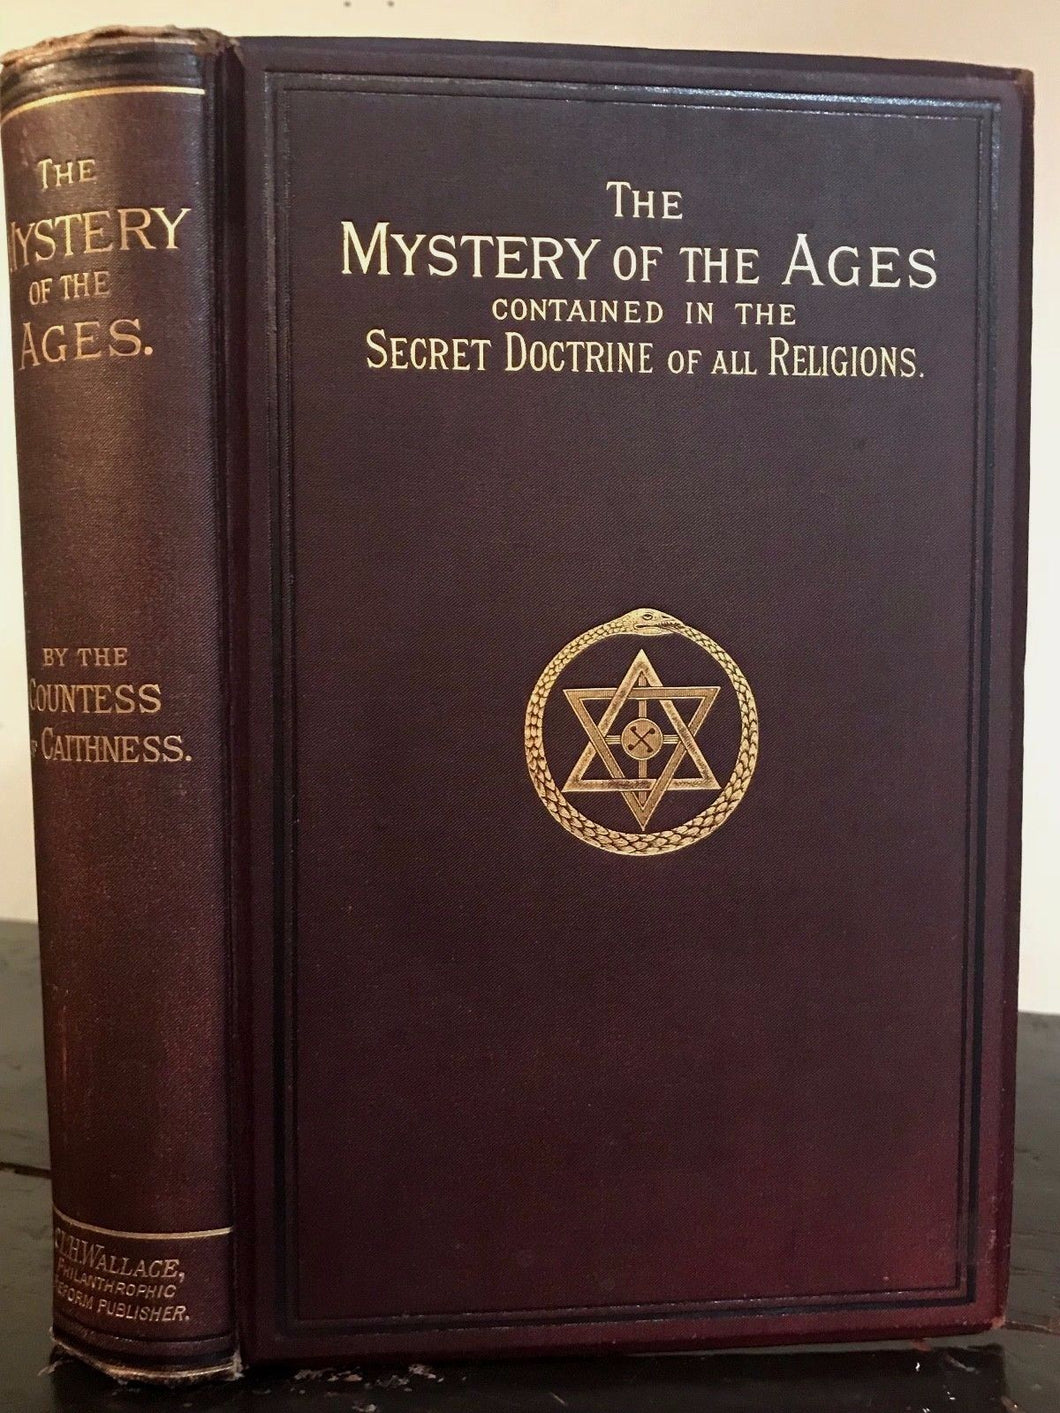 MYSTERY OF THE AGES: SECRET DOCTRINE OF ALL RELIGIONS - SINCLAIR 1st 1887 SCARCE